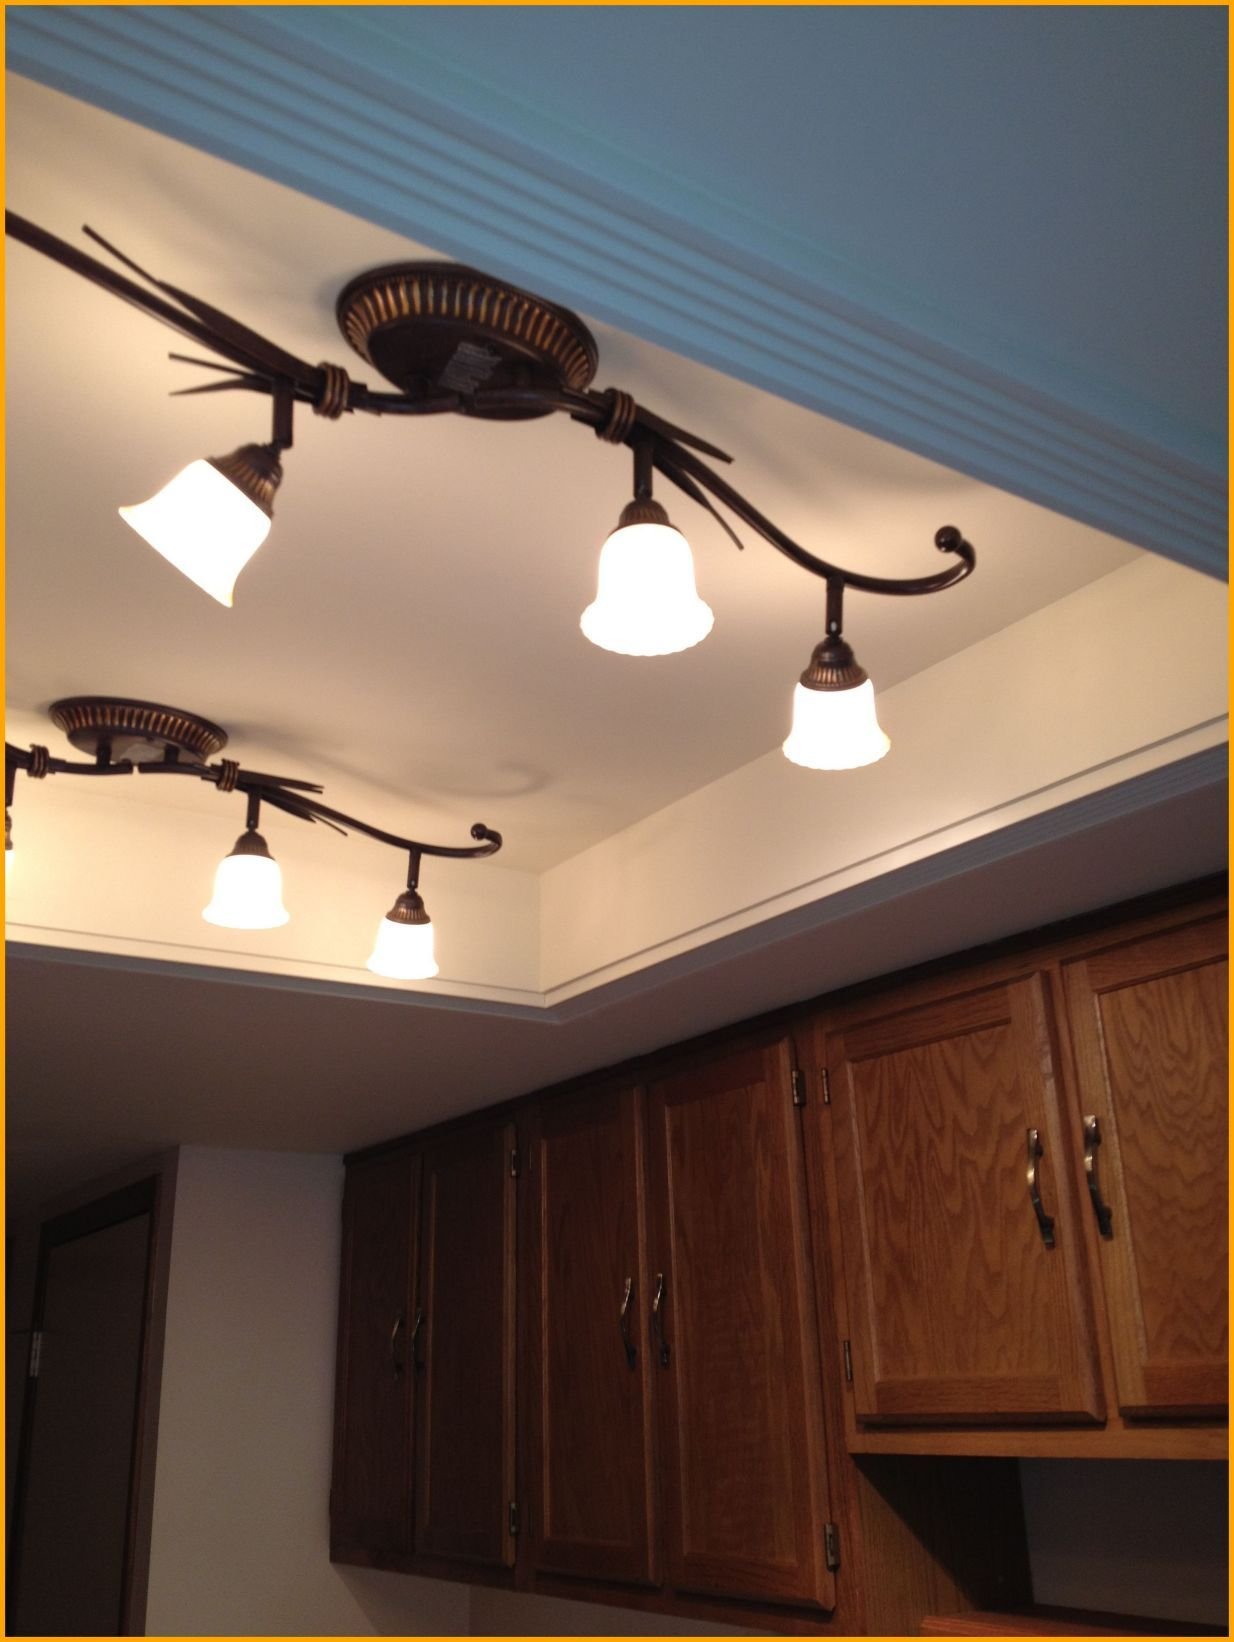 Stunning Ceiling Fluorescent Light Covers Diy Diffuser Pic Of Kitchen Popular And Replacement Ideas Kitchen Light Covers With Images Kitchen Ceiling Lights Fluorescent Kitchen Lights Kitchen Lighting Fixtures